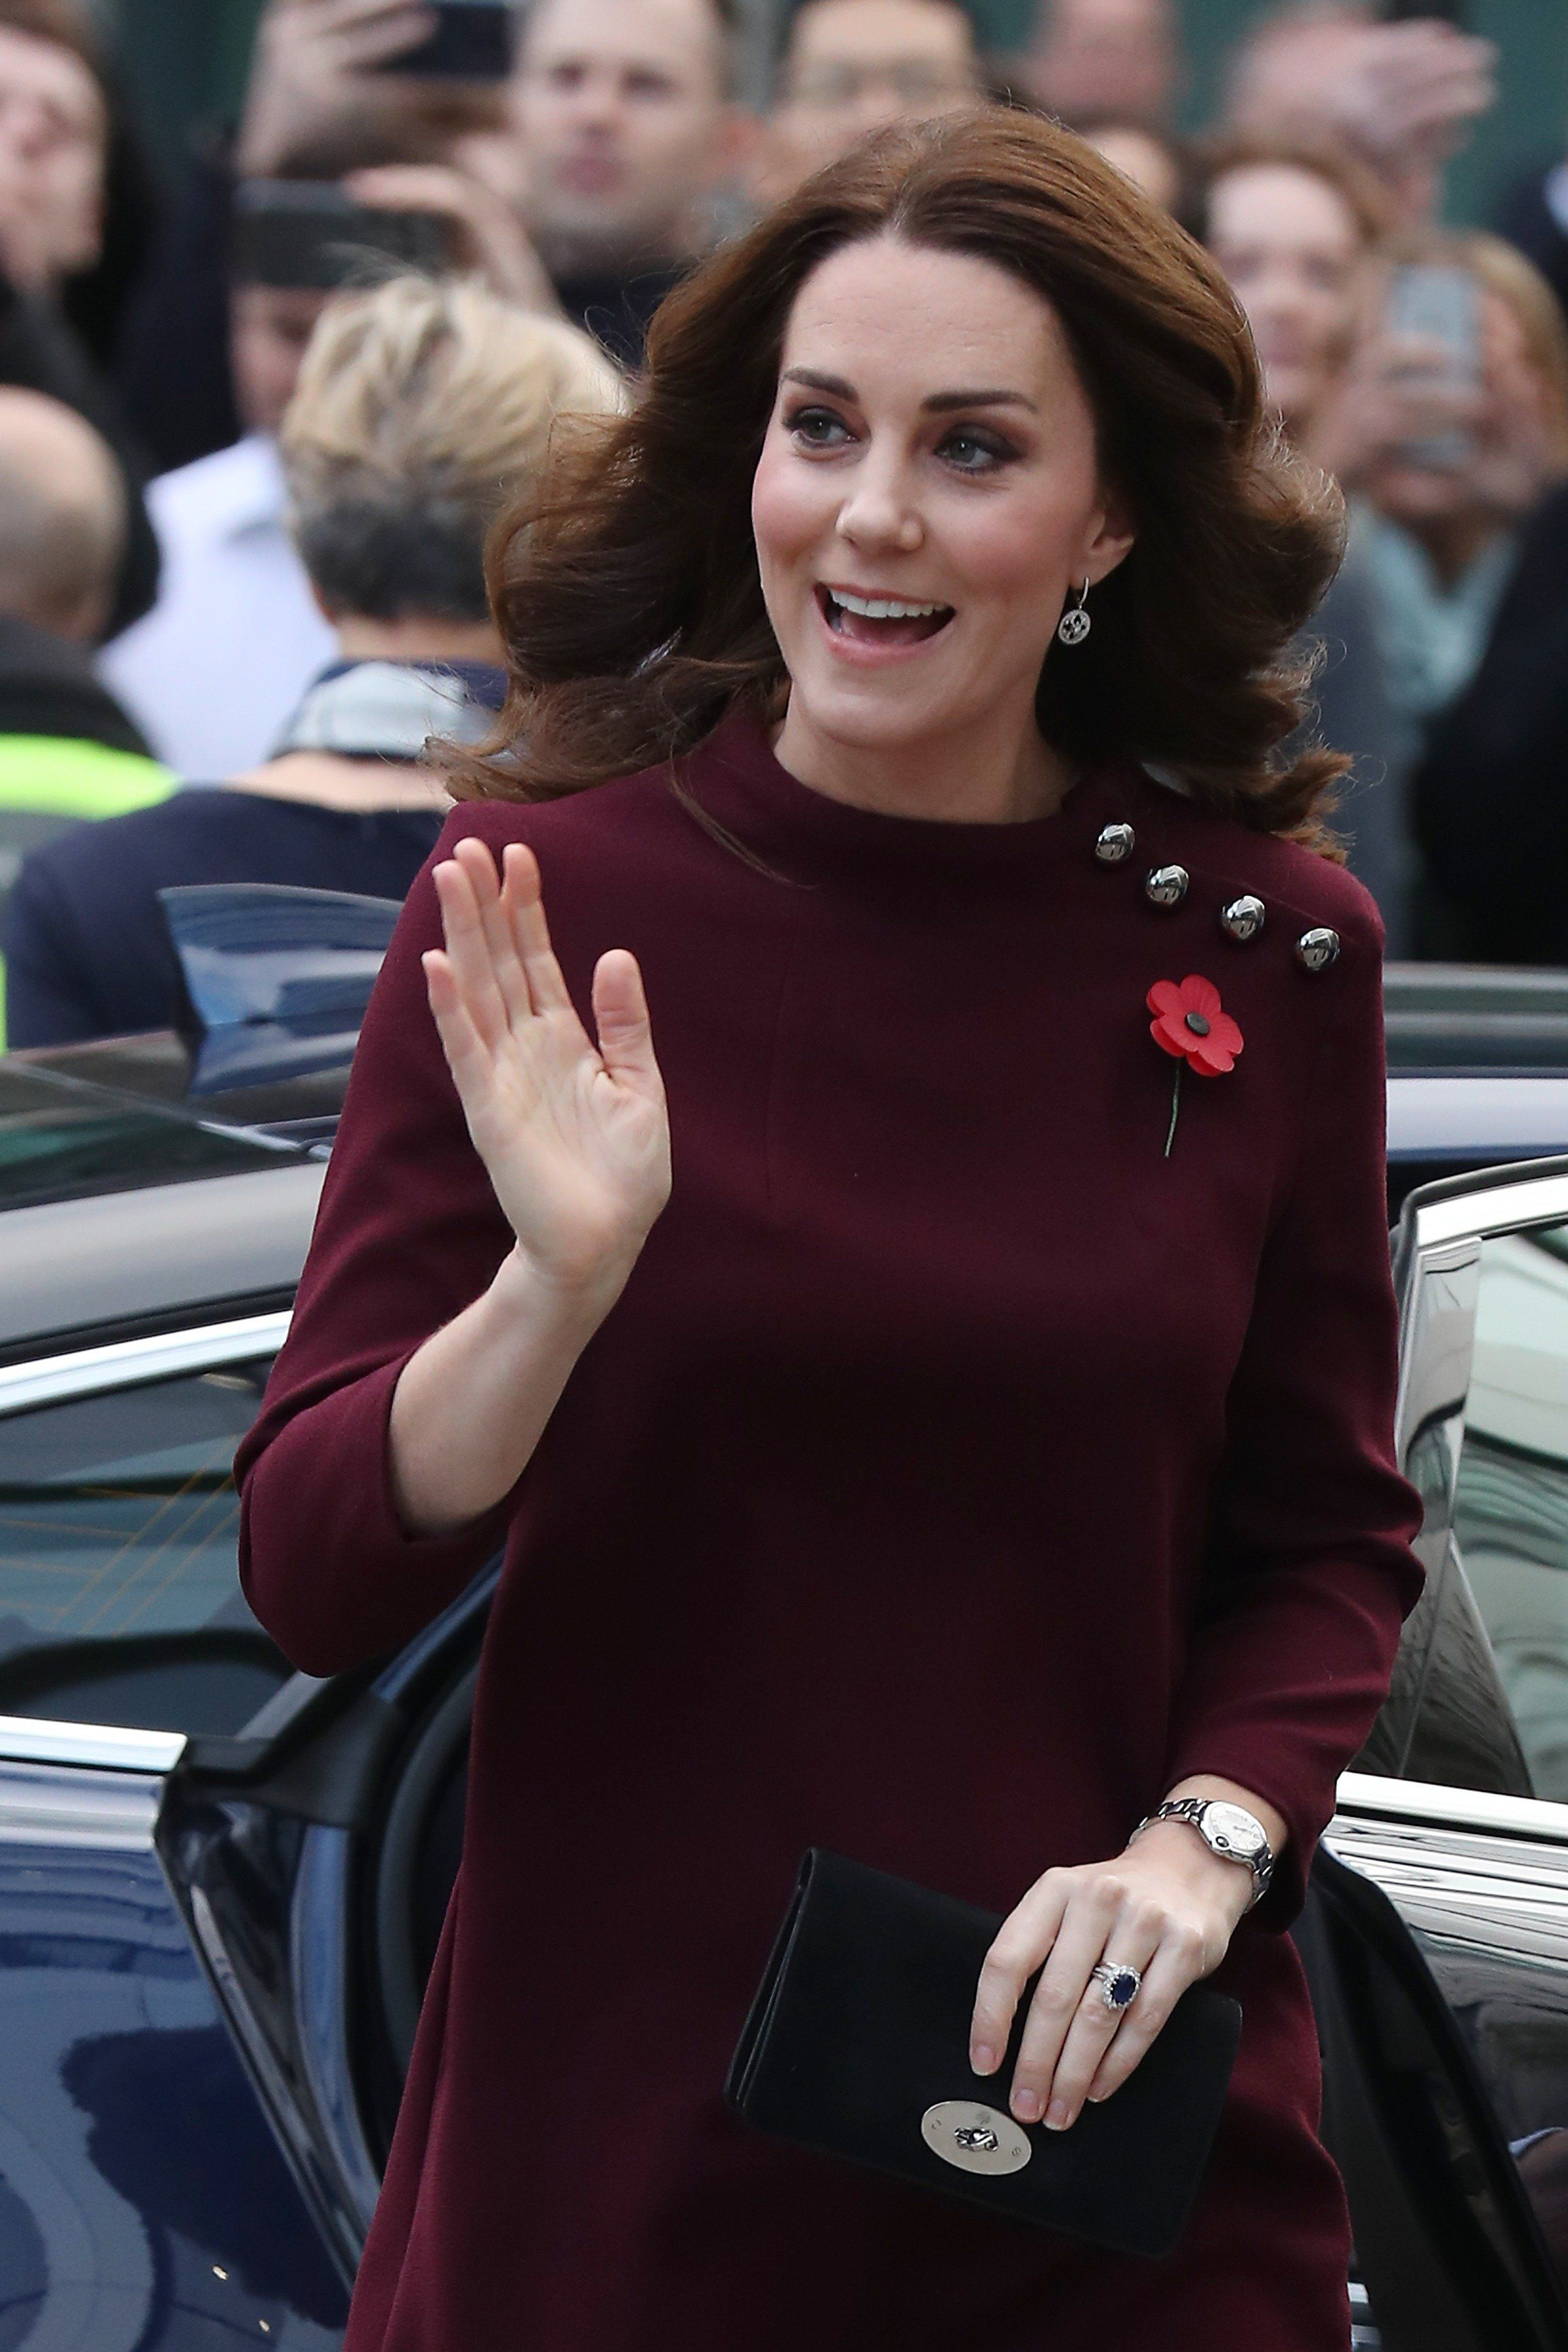 Duchess Of Cambridge Says She Is Still Getting Used To Leaving Prince George At The School